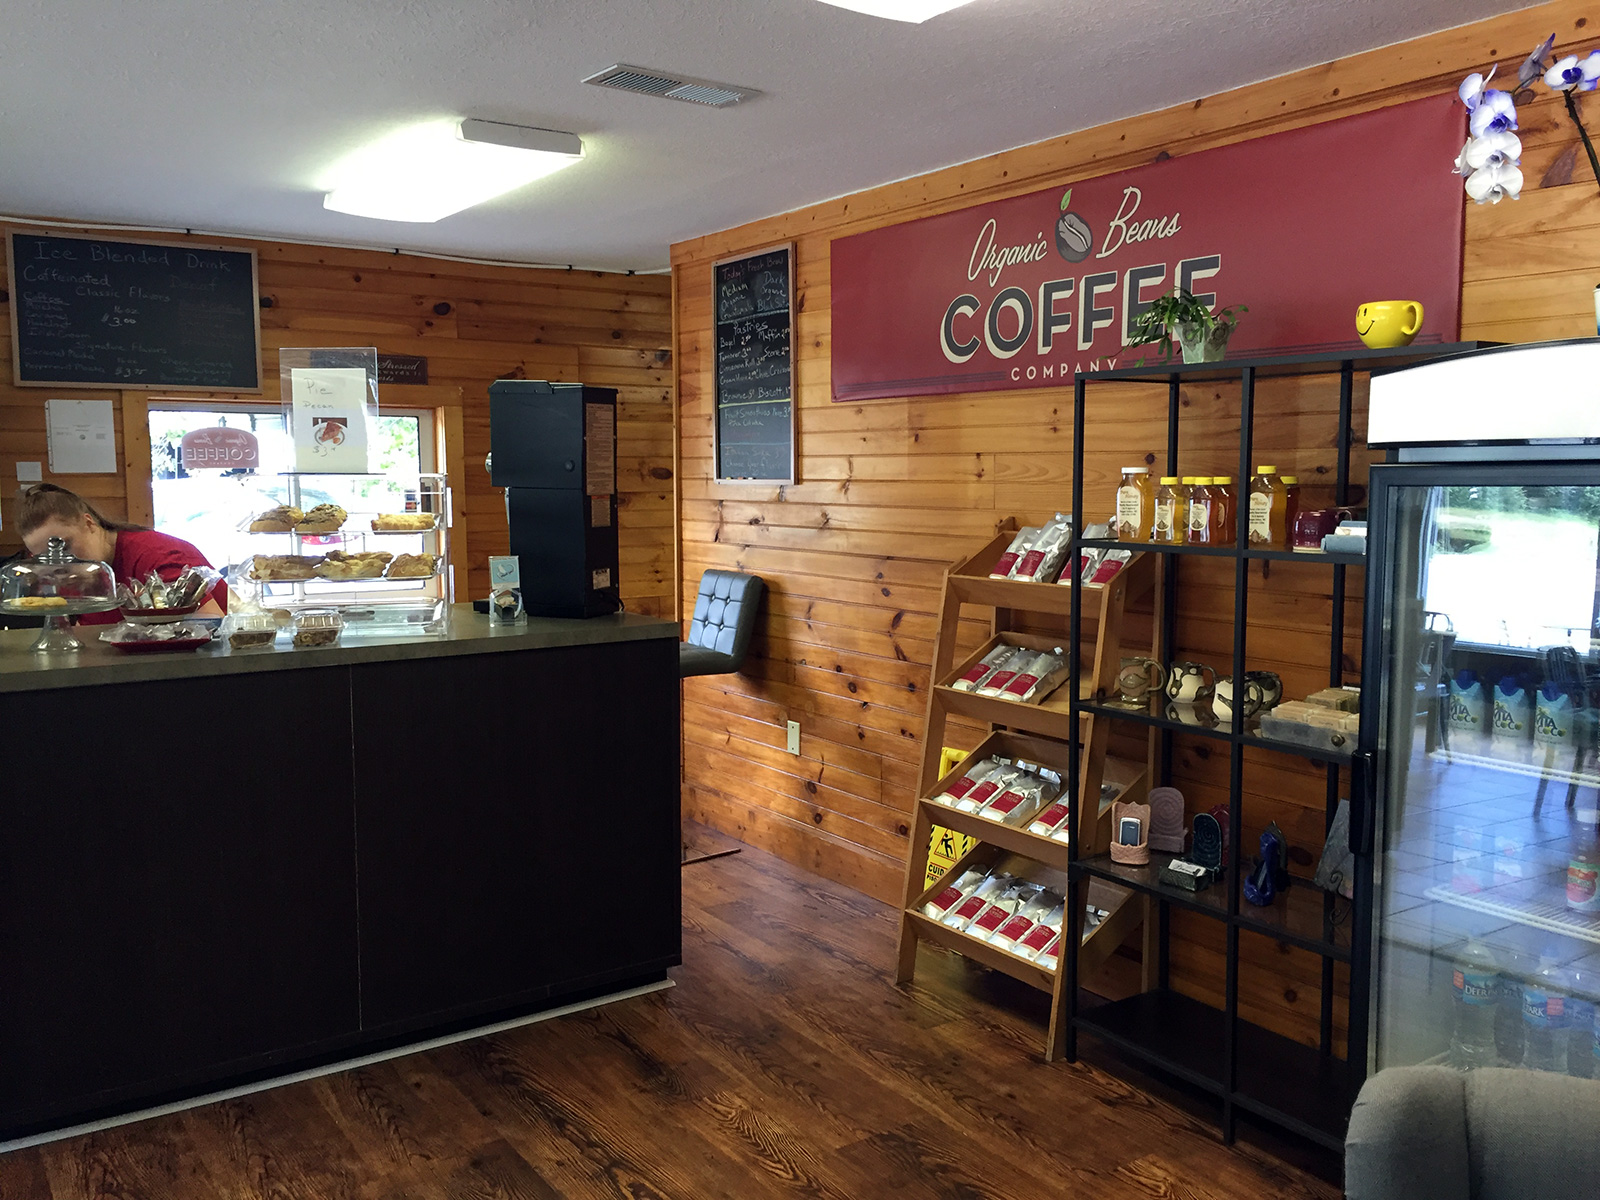 Organic Beans Coffee Shop in Maggie Valley, NC by Jets Like Taxis